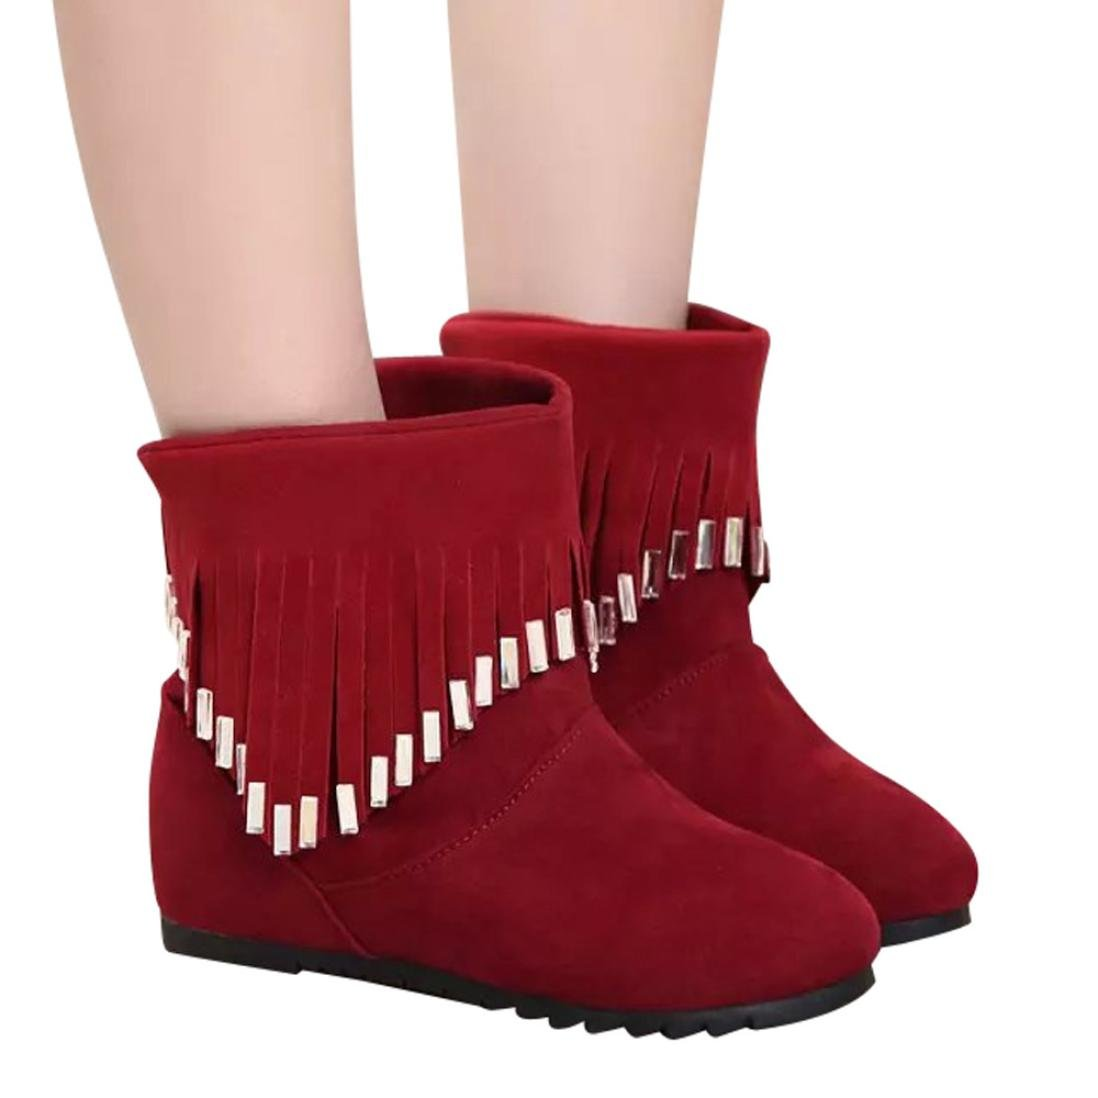 Leewa Women Short Boots Flat Fringe Slip-On Solid Color Flock Tassel Low Ankle Boots Casual Shoes Martin Boots Winter Autumn